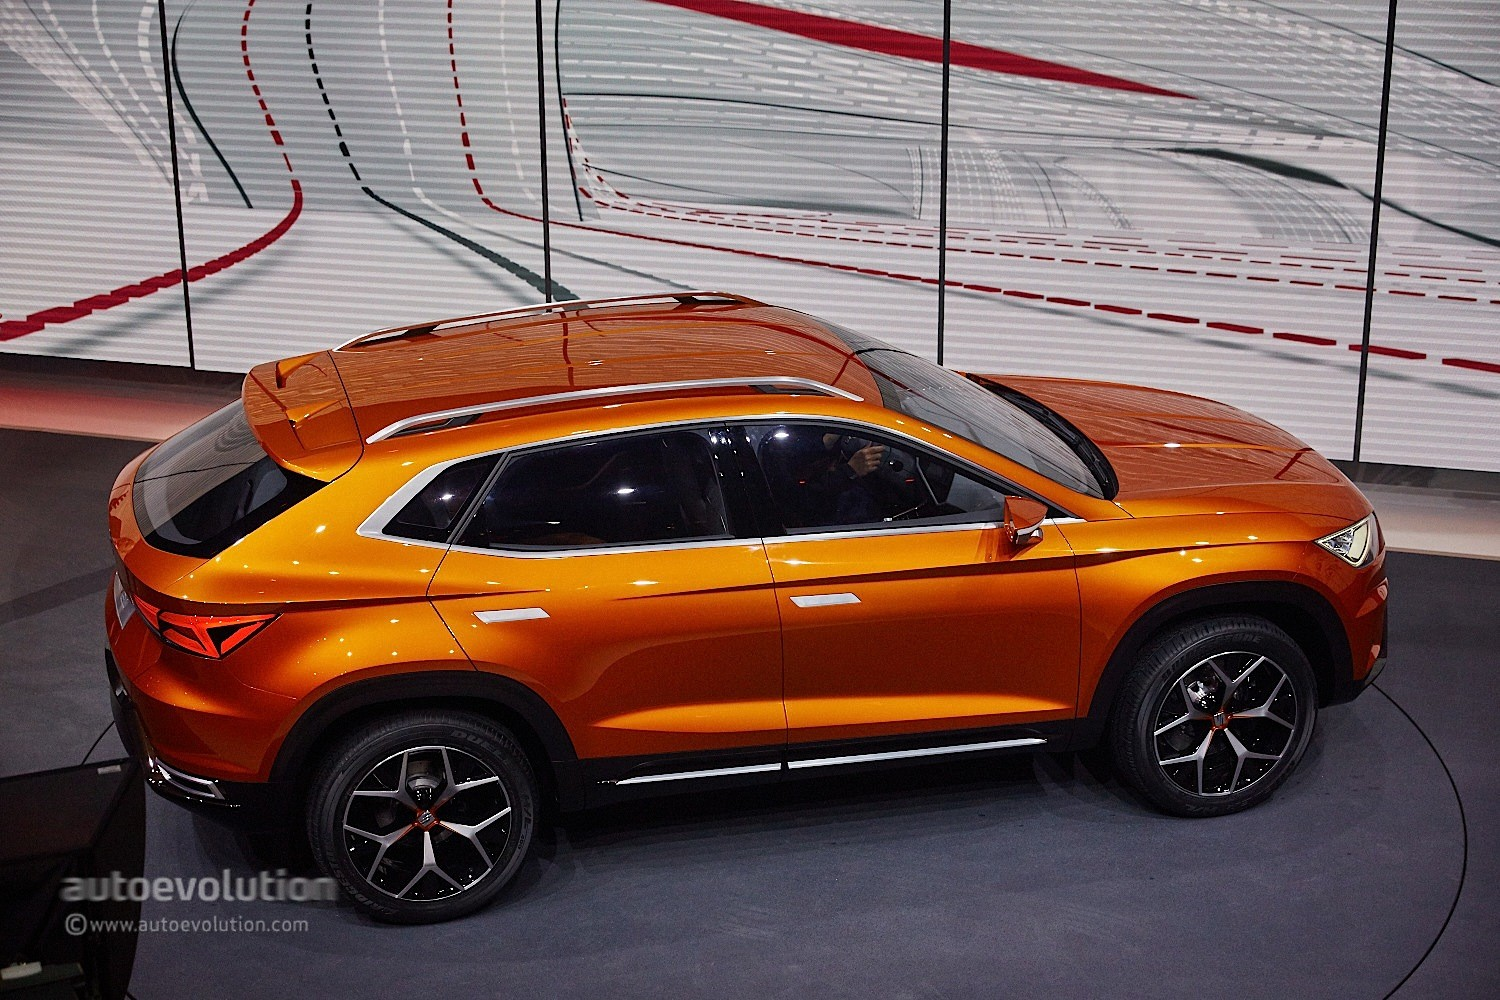 Different Suv Models >> SEAT Prostyle SUV Will Be the First of 4 New Models Coming Until 2017 - autoevolution